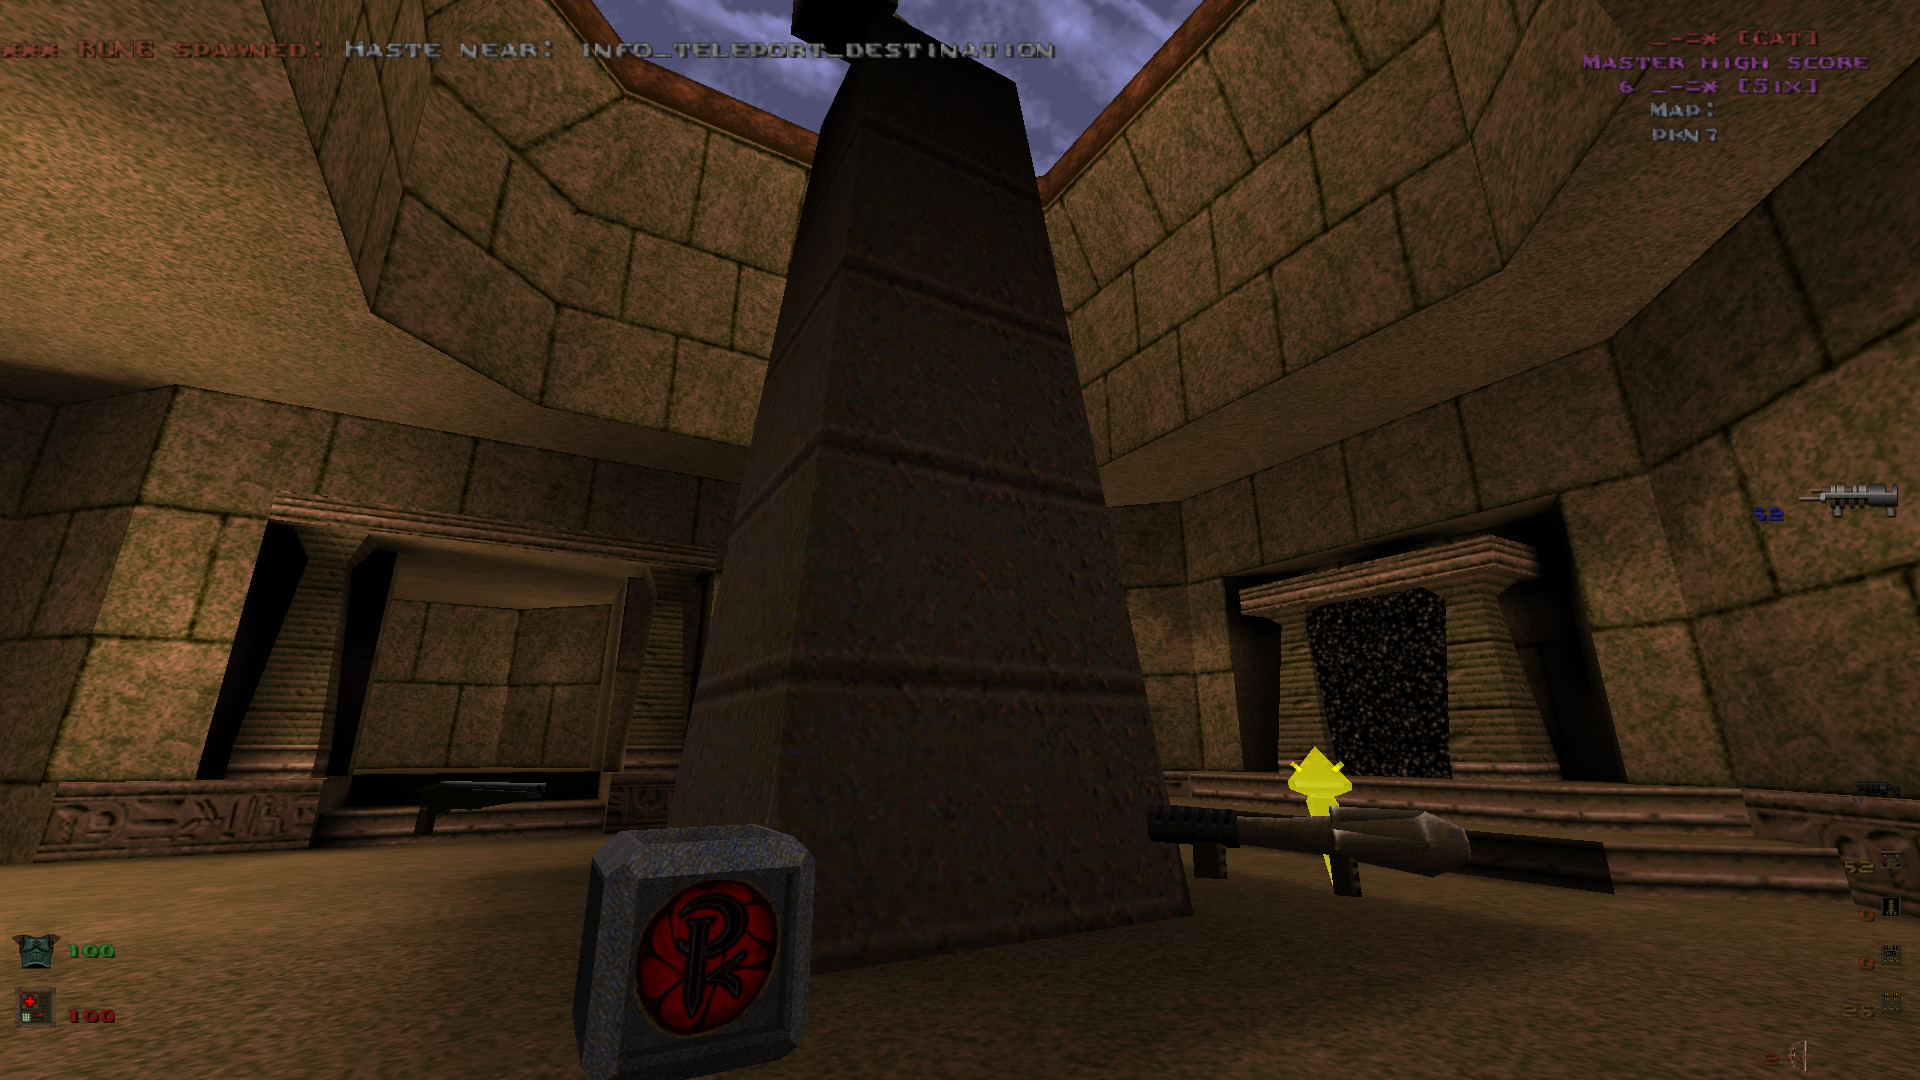 PK 3 0 - hack DM maps image - Painkeep v3 0 mod for Quake